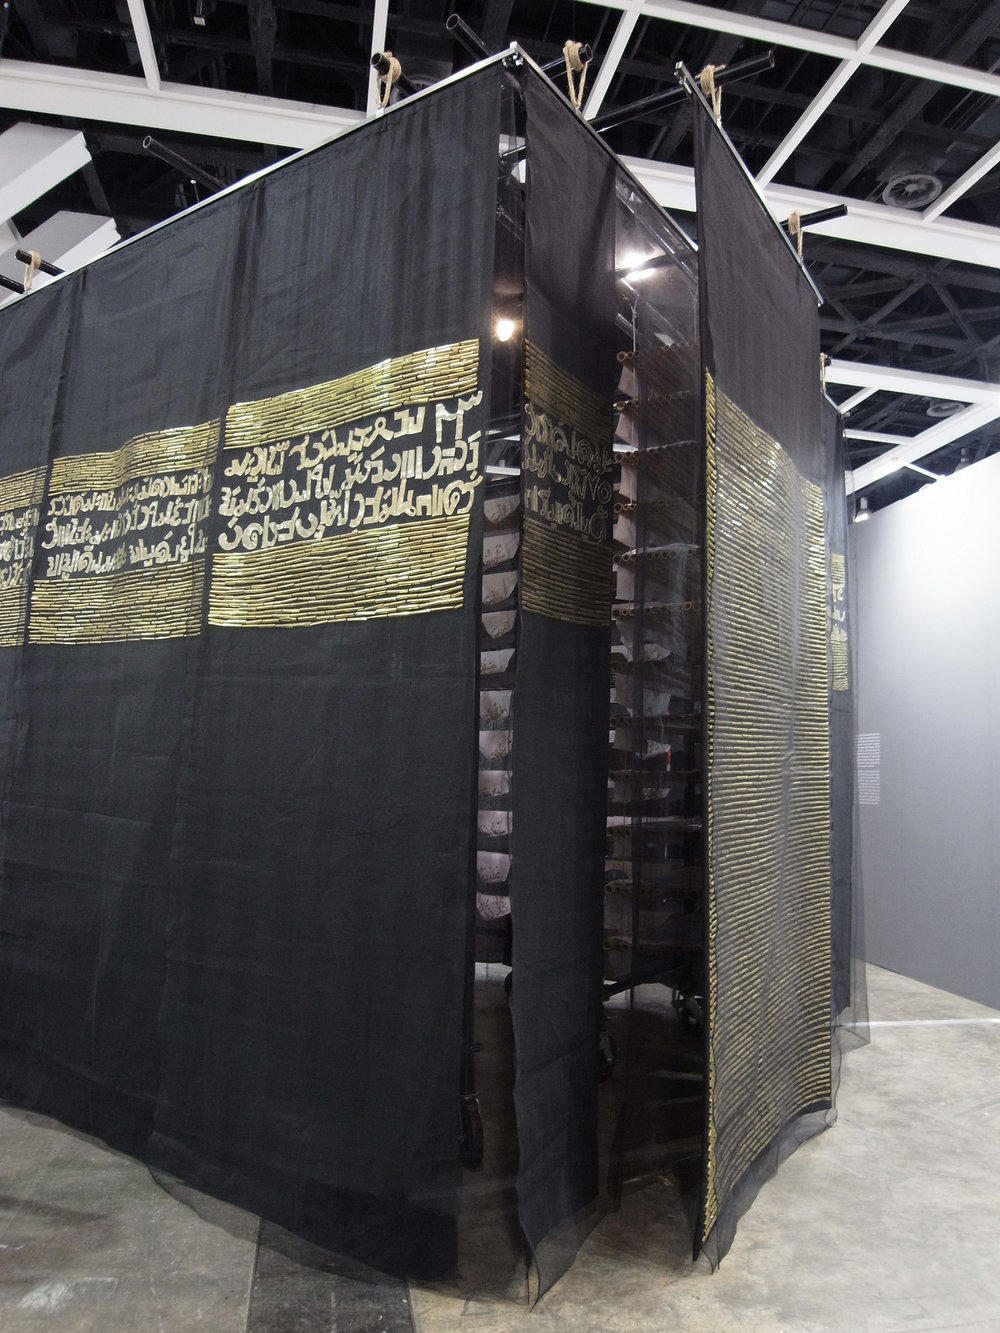 78, 2014, Steel Scaffolding, Bamboo, Fabric, Embroidery, Courtesy of the Artist. 350 x 350 x 350 cm